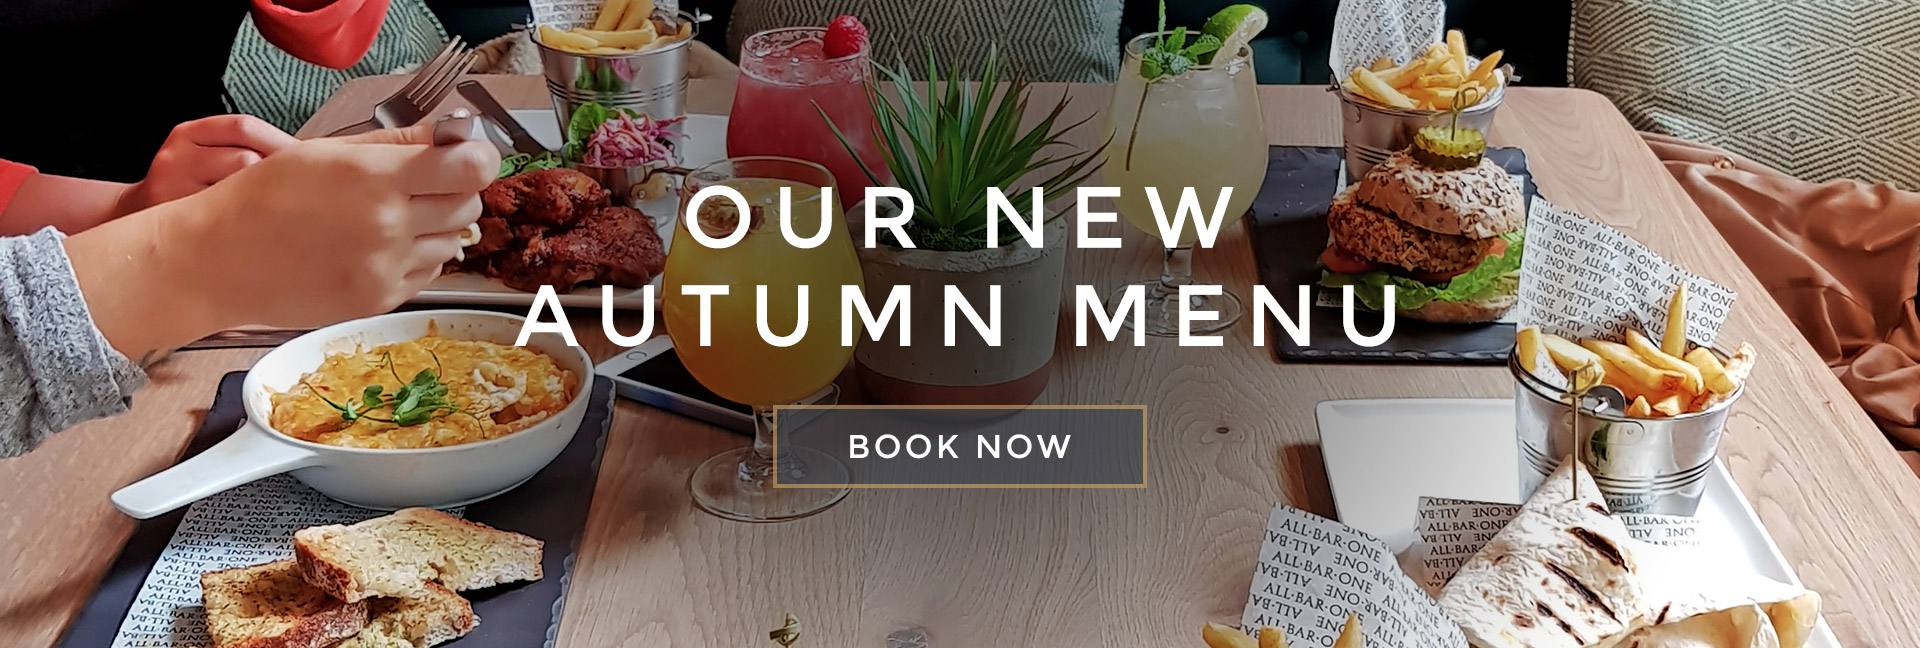 Our new Autumn menu at All Bar One Picton Place - Book now